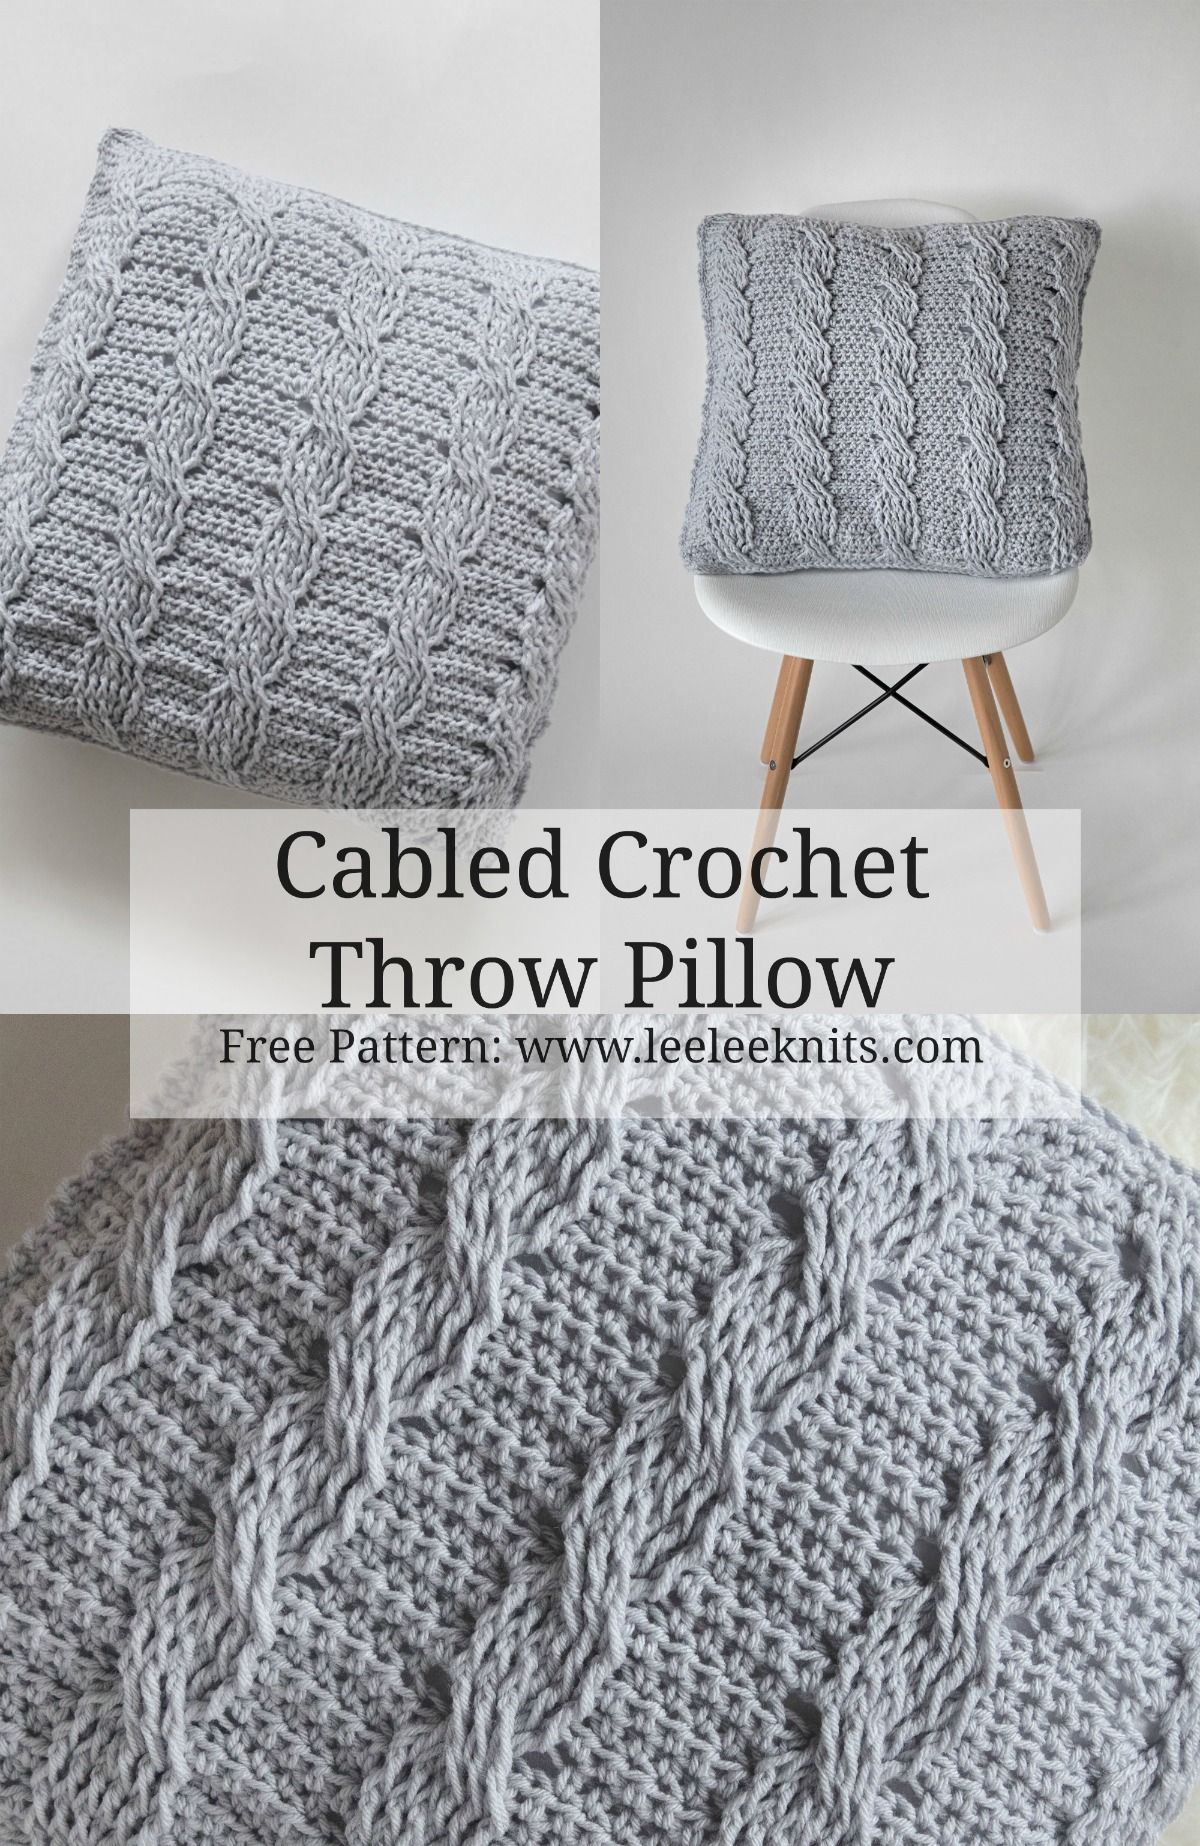 Cable Crochet Throw Pillow By Leelee Knits - Free Crochet Pattern ...